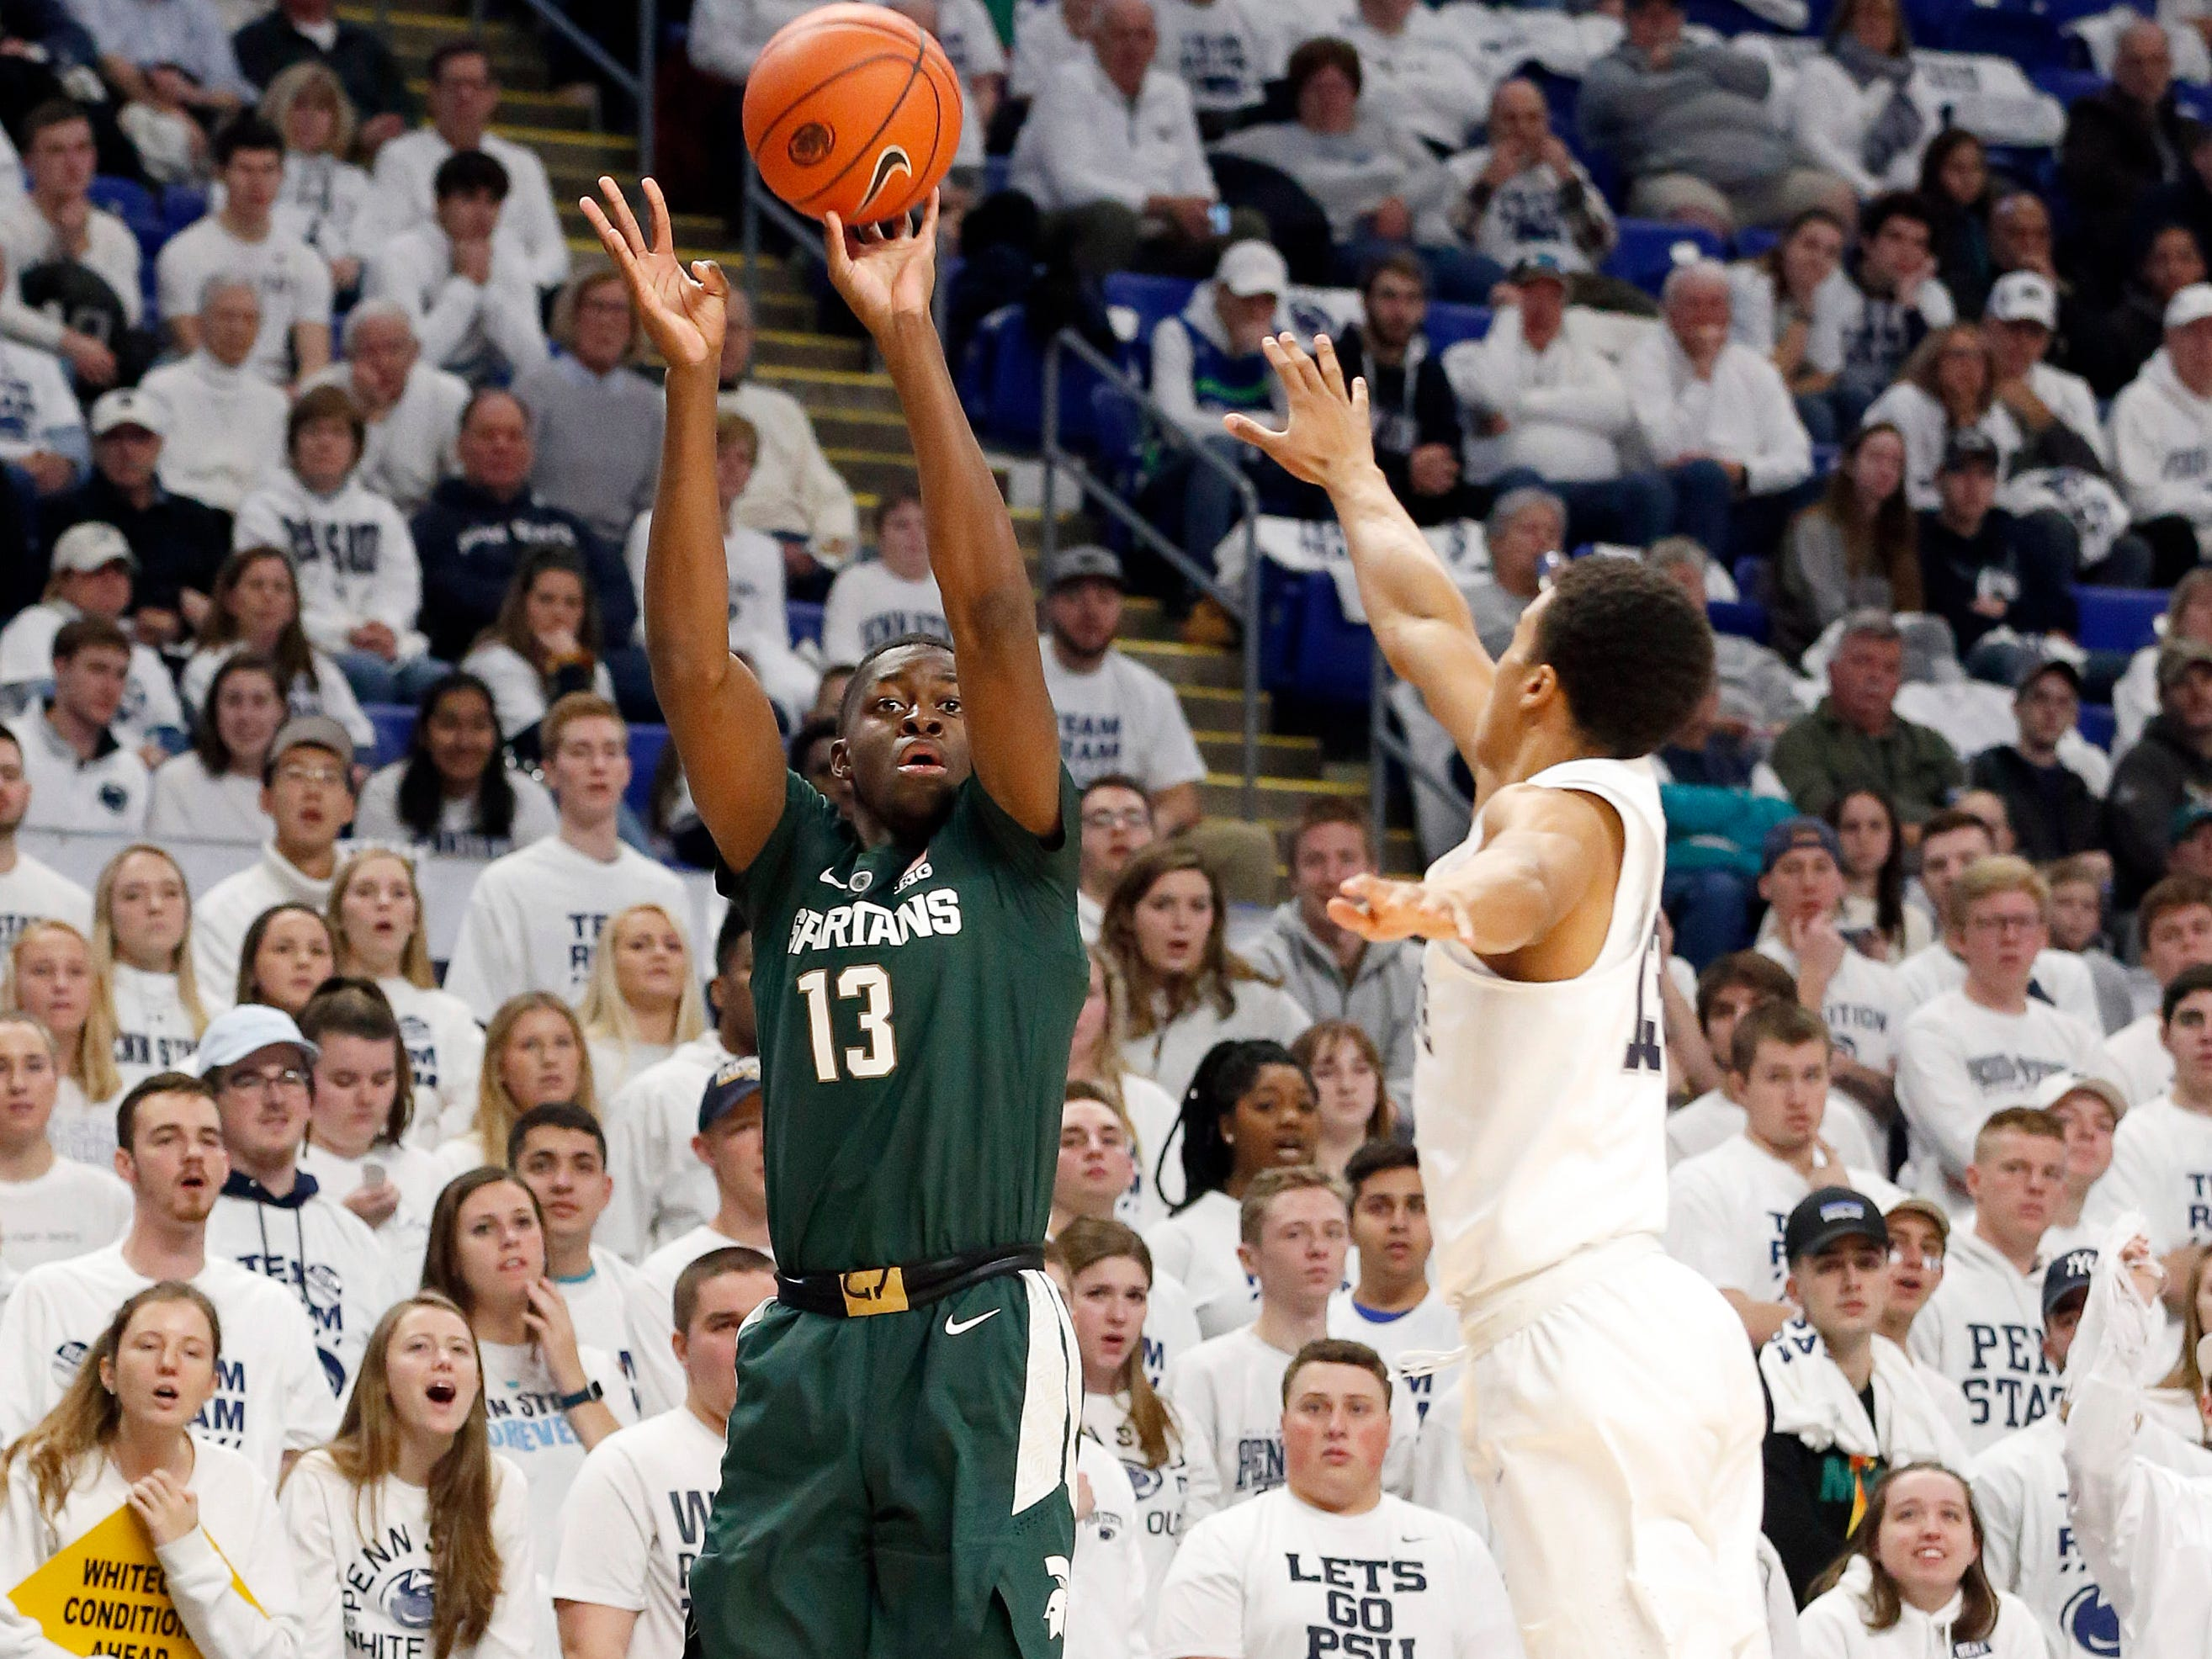 Michigan State's Gabe Brown (13) shoots a three-point basket as Penn State's Rasir Bolton (13) defends during first half action.